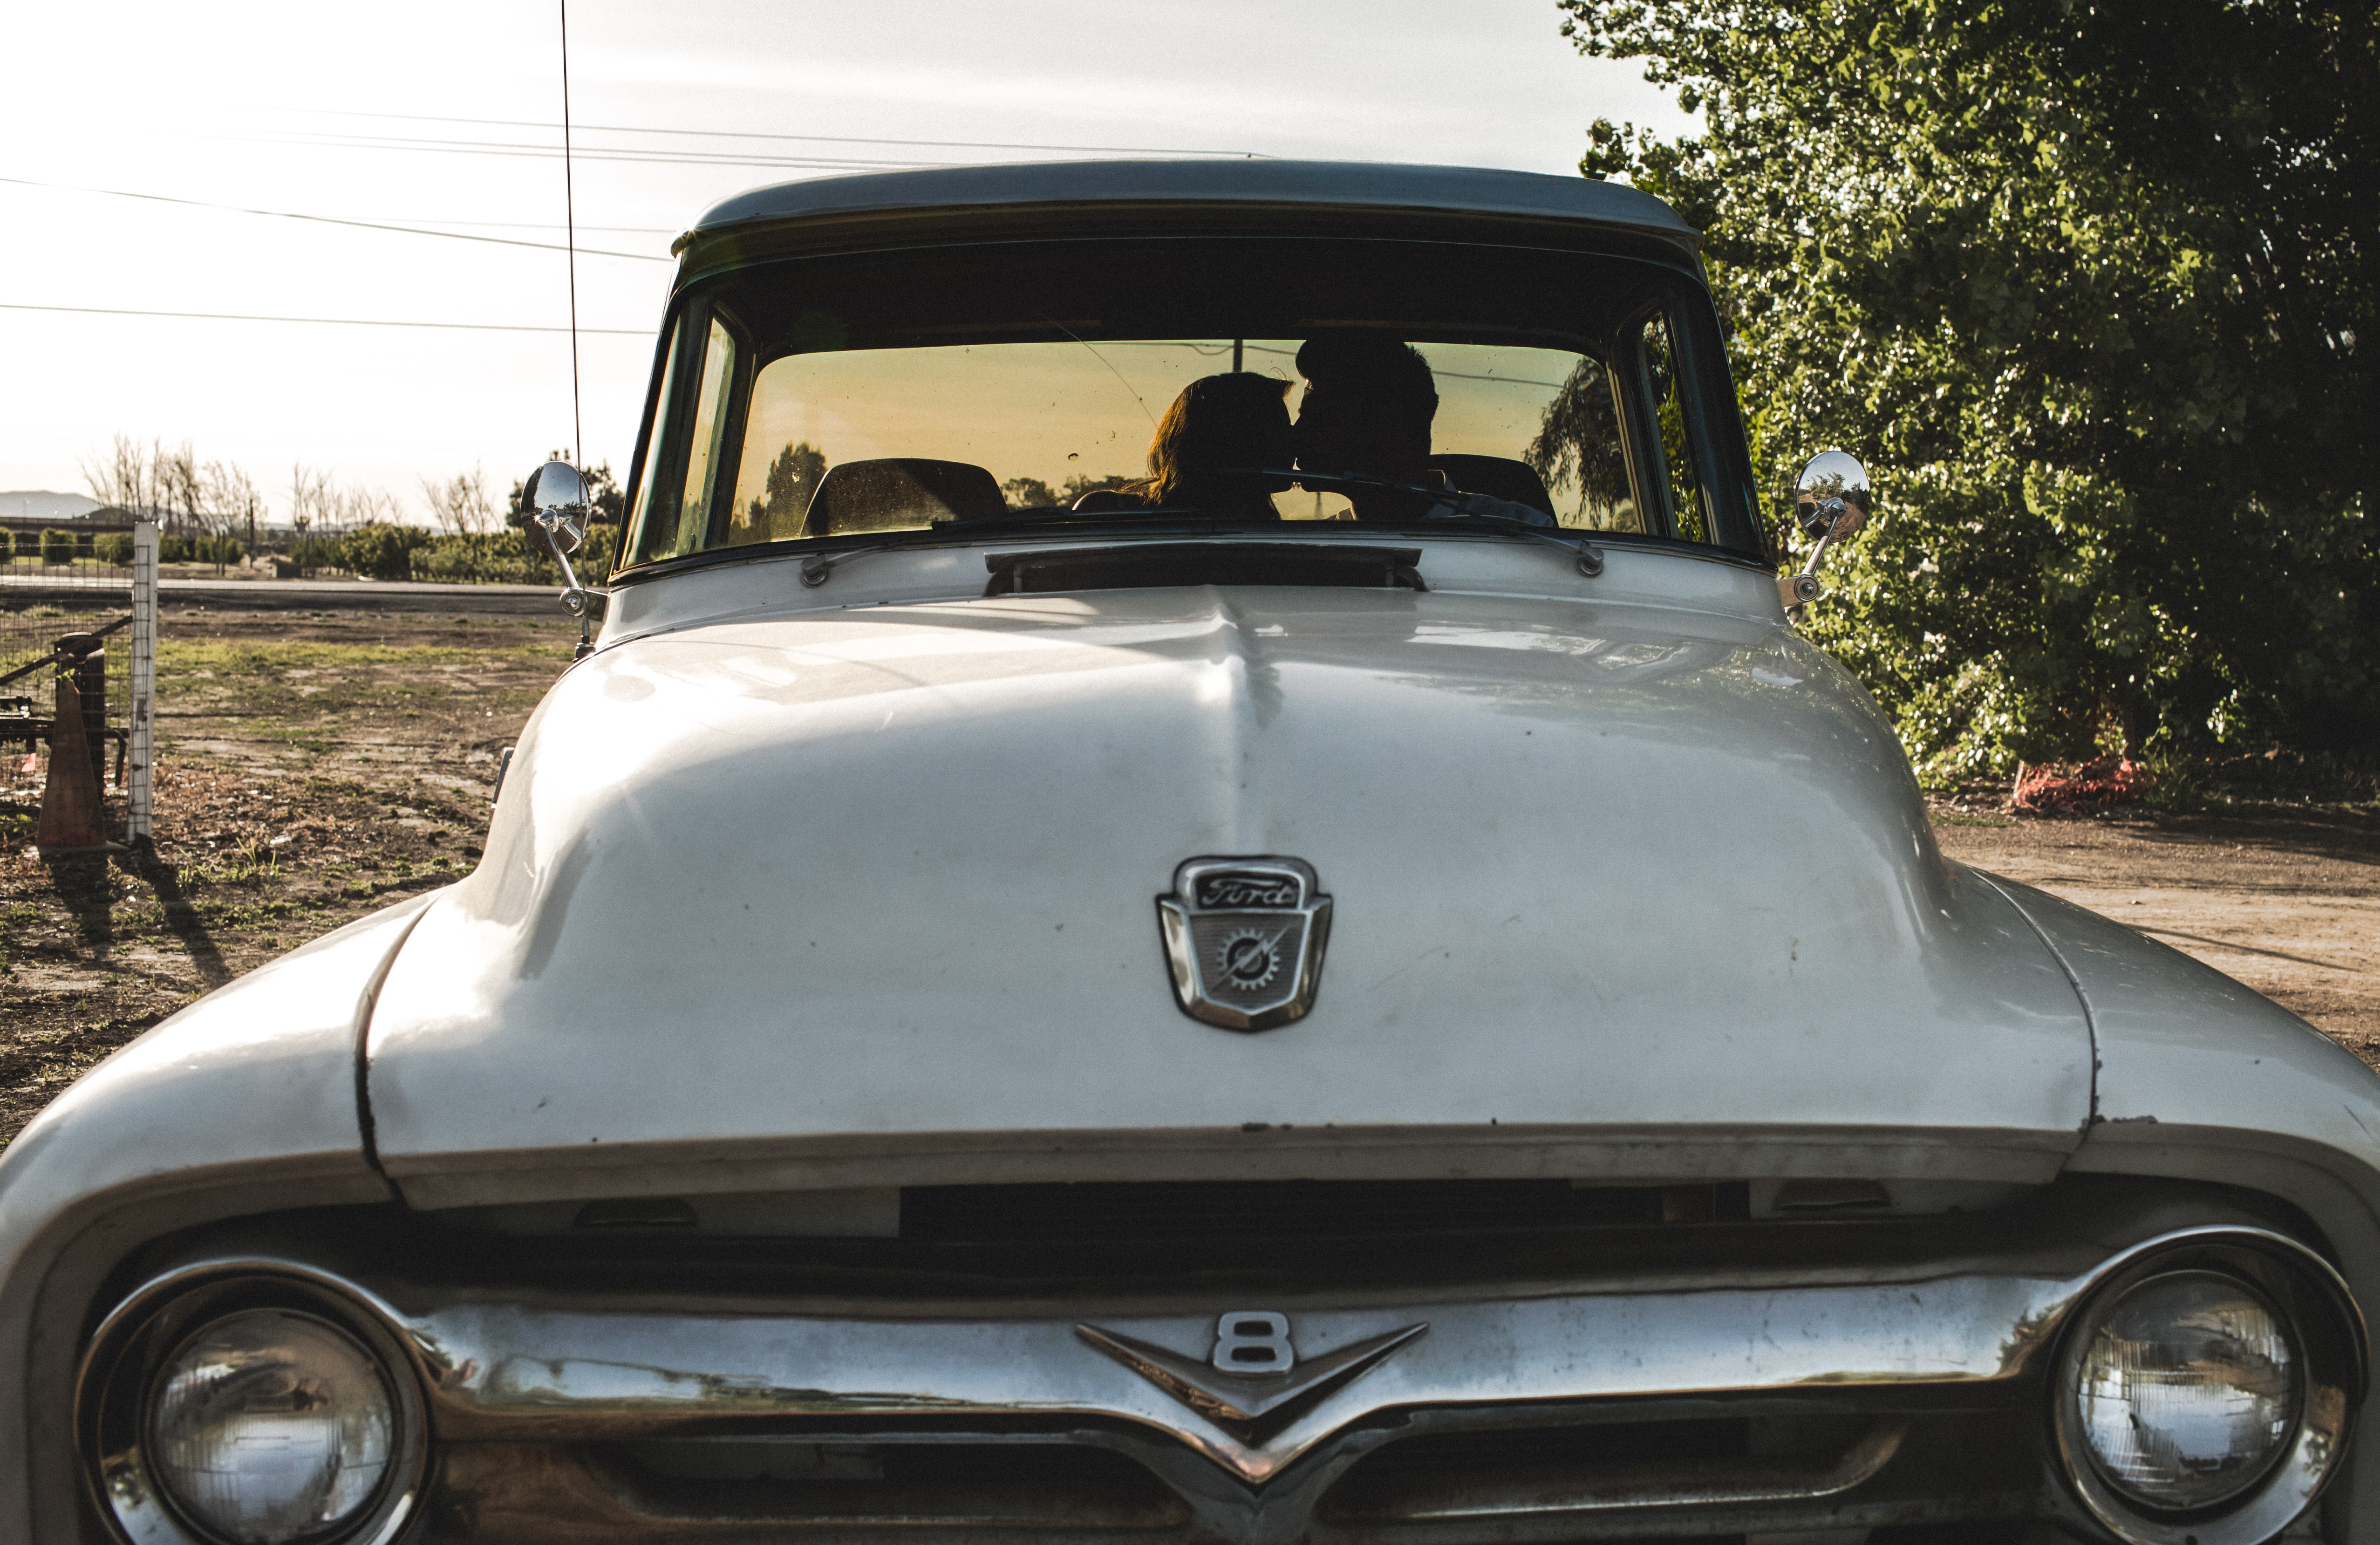 A couple kissing inside an old vintage Ford truck on a farm